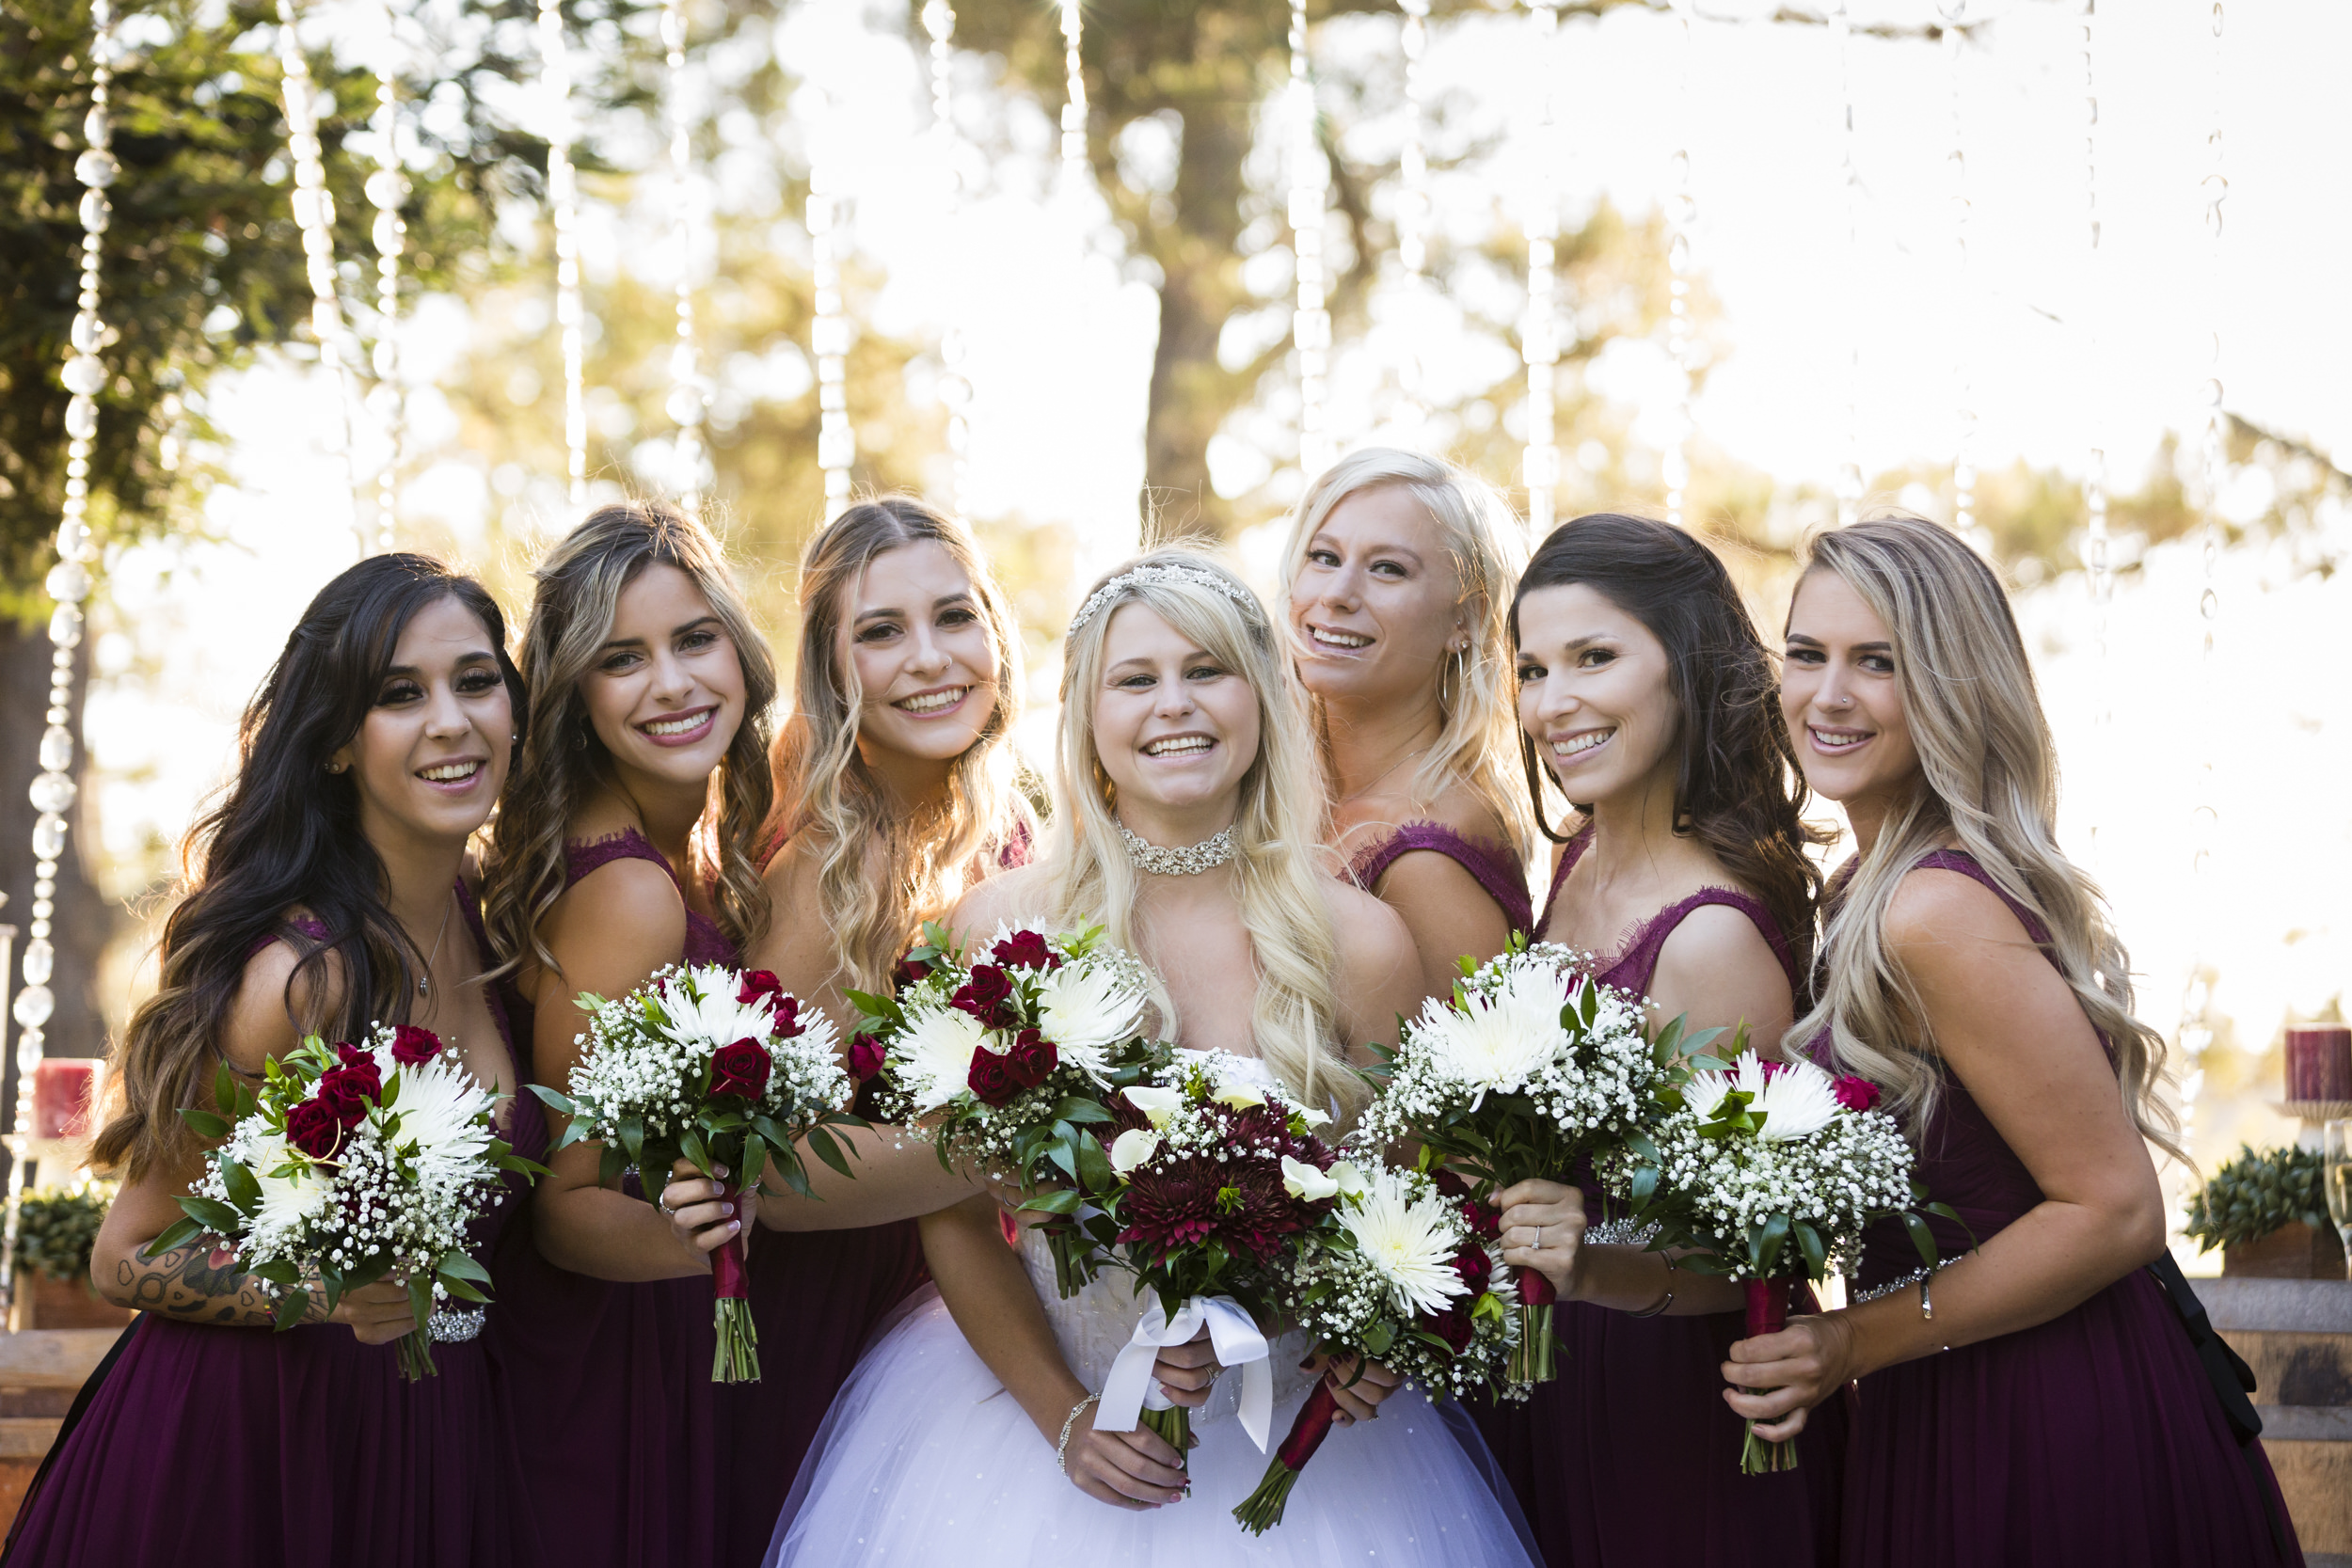 bridal-party-bridesmaids-posing-with-bride-1.jpg